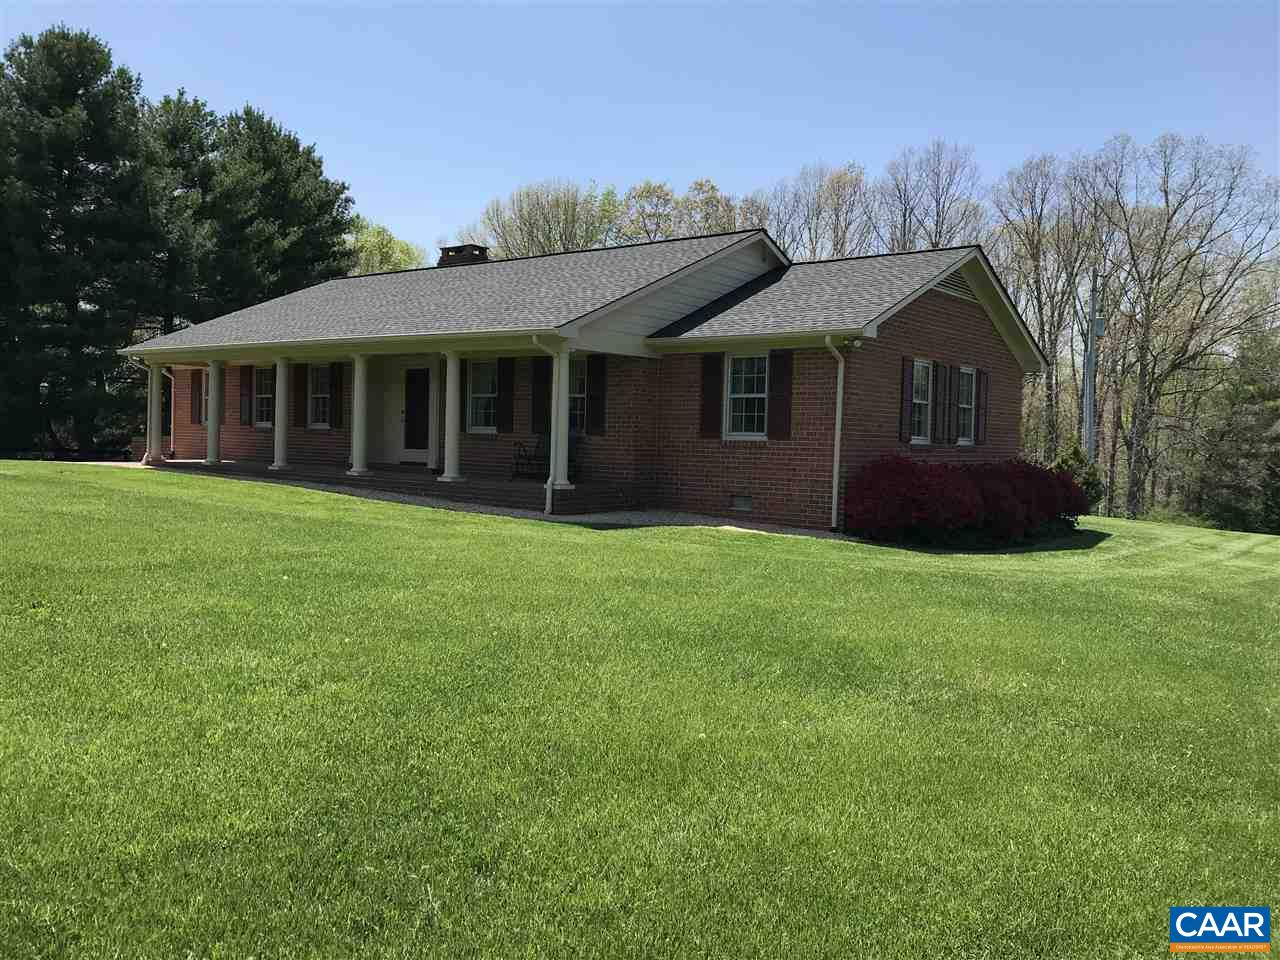 home for sale , MLS #565203, 1224 Paynes Landing Rd